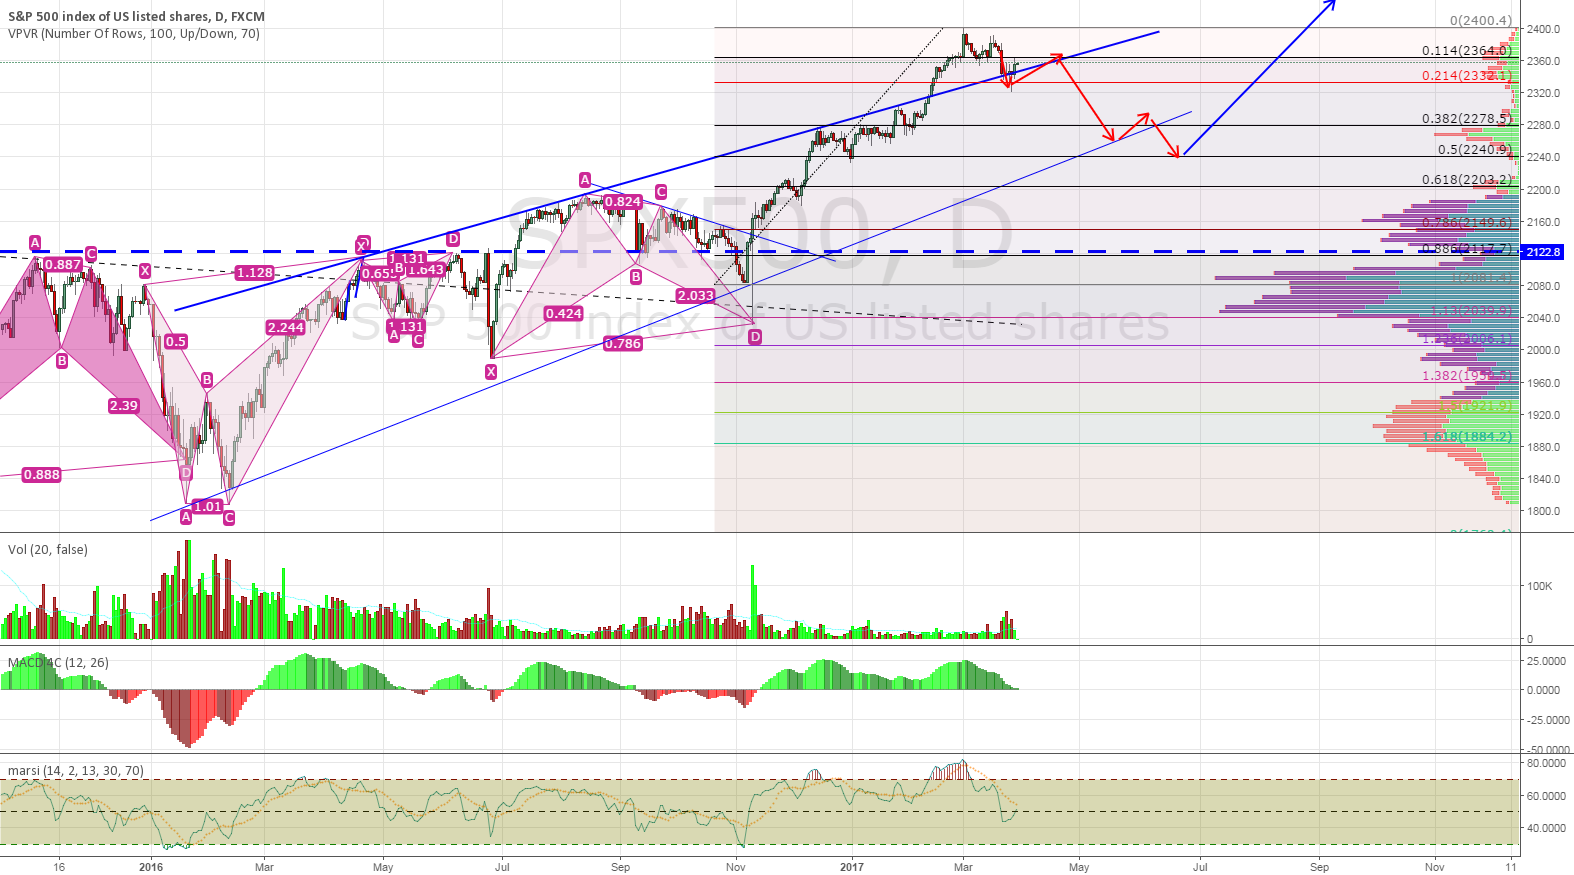 An Alternative Point SPX500 Will Correct to Before Going Backup